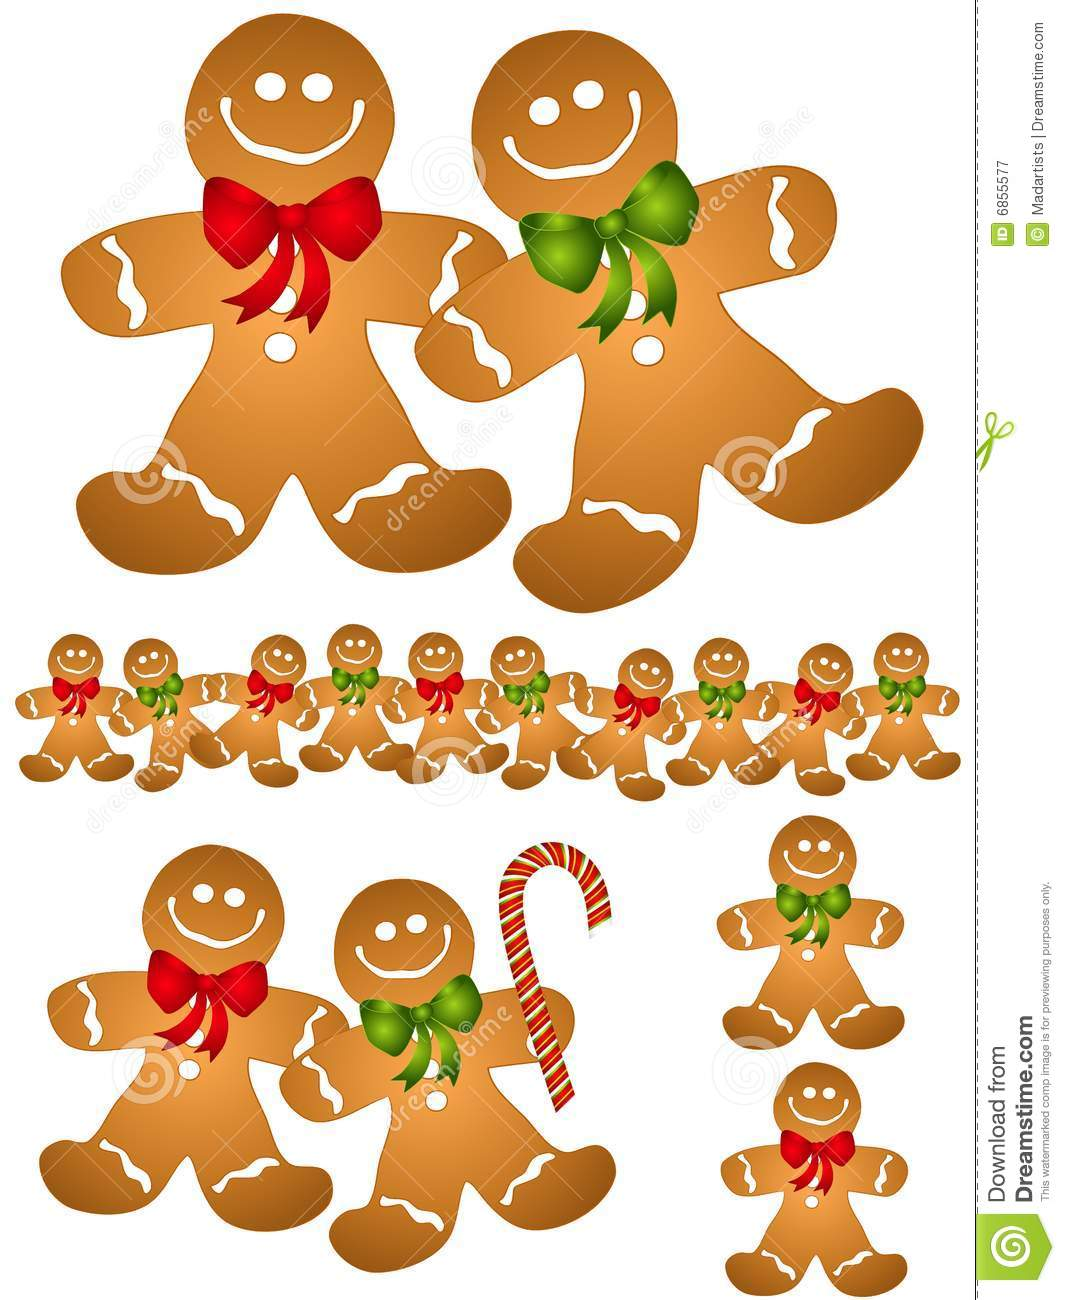 gingerbread men clip art stock vector illustration of christmas rh dreamstime com gingerbread man clip art black and white Gingerbread Man Story Clip Art